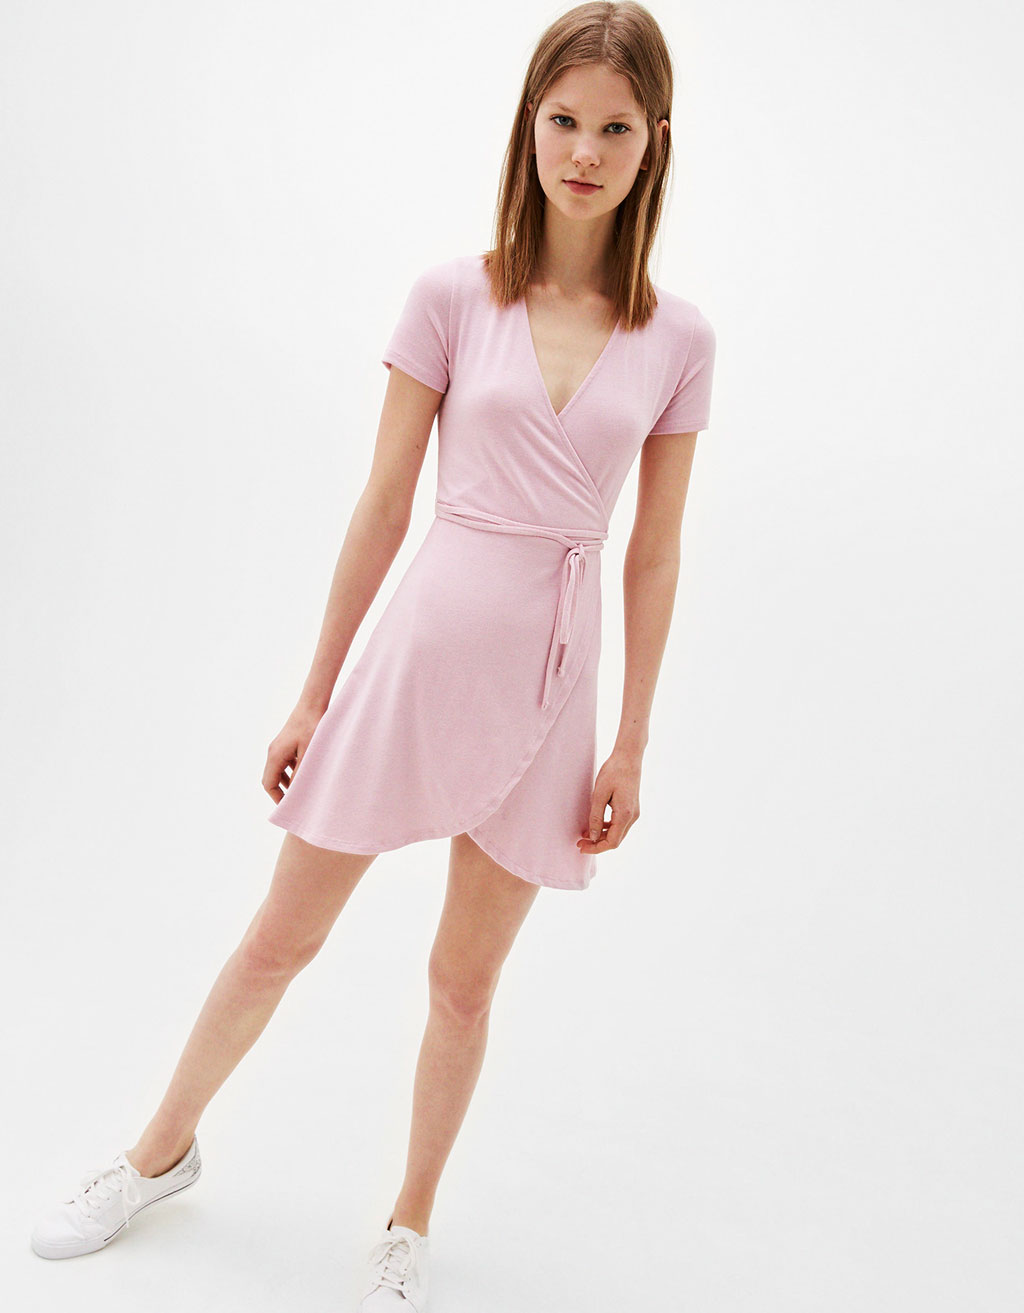 Ballerina dress with crossed back